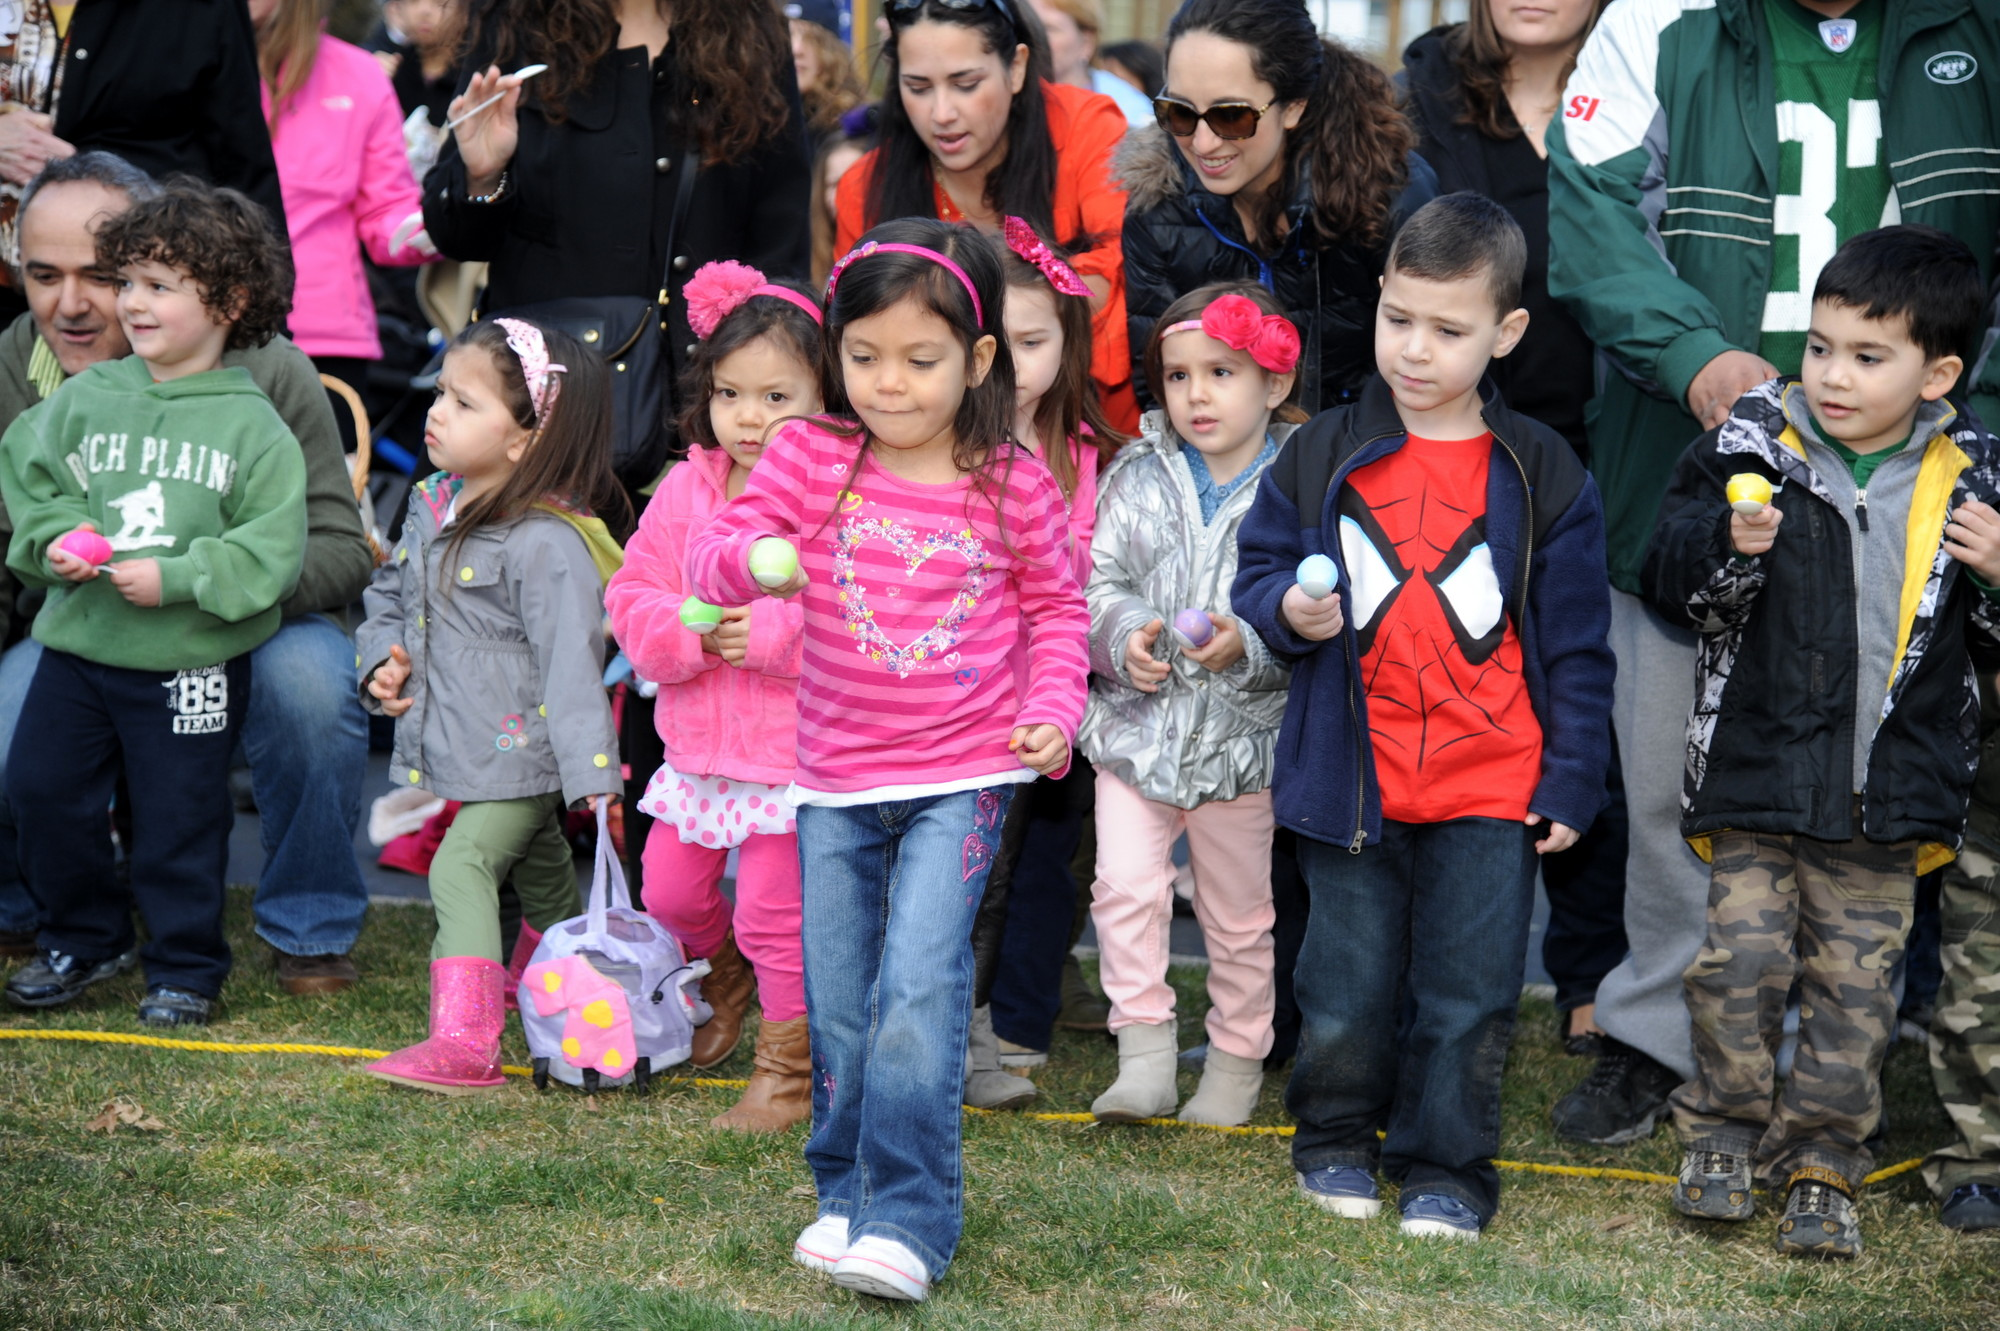 Dozens of children participated in the Easter egg race at St. Joseph's R.C. Church in Hewlett on Saturday.